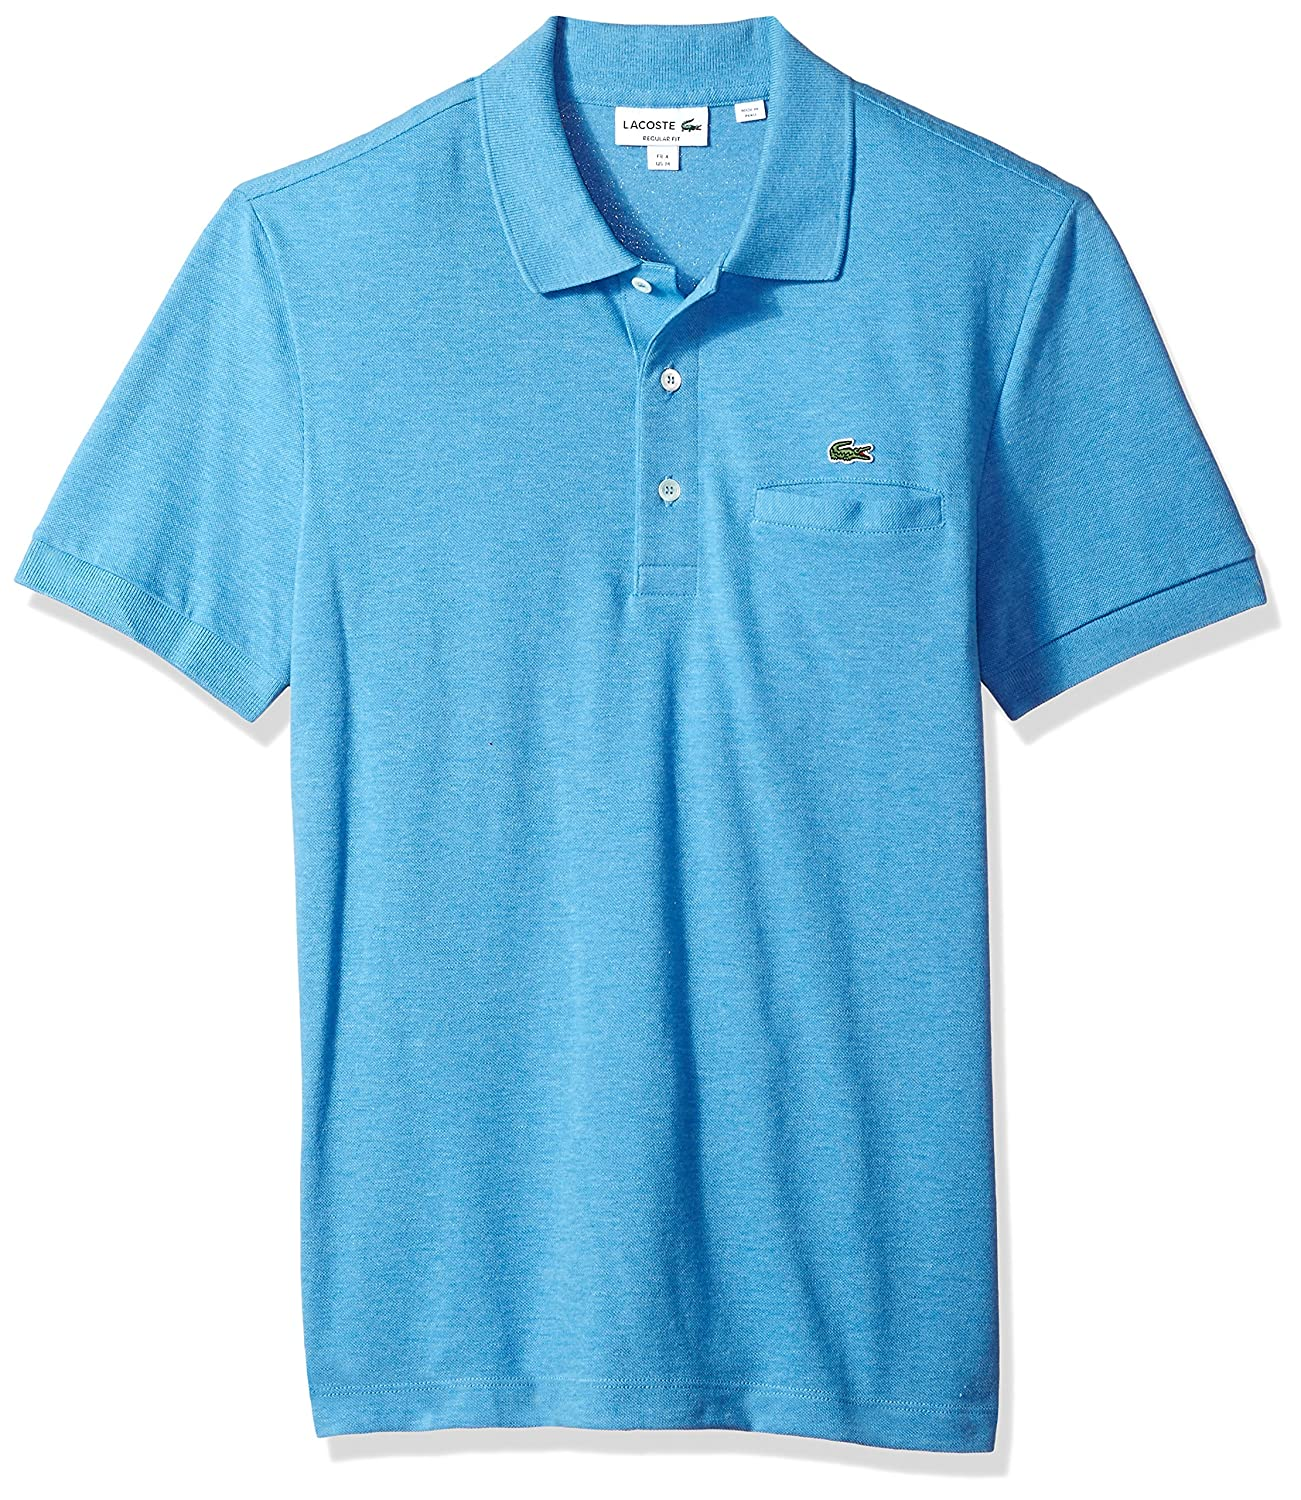 8b2199ce9a Lacoste Mens Short Sleeve Regular Fit Solid Polo with Pocket: Amazon ...